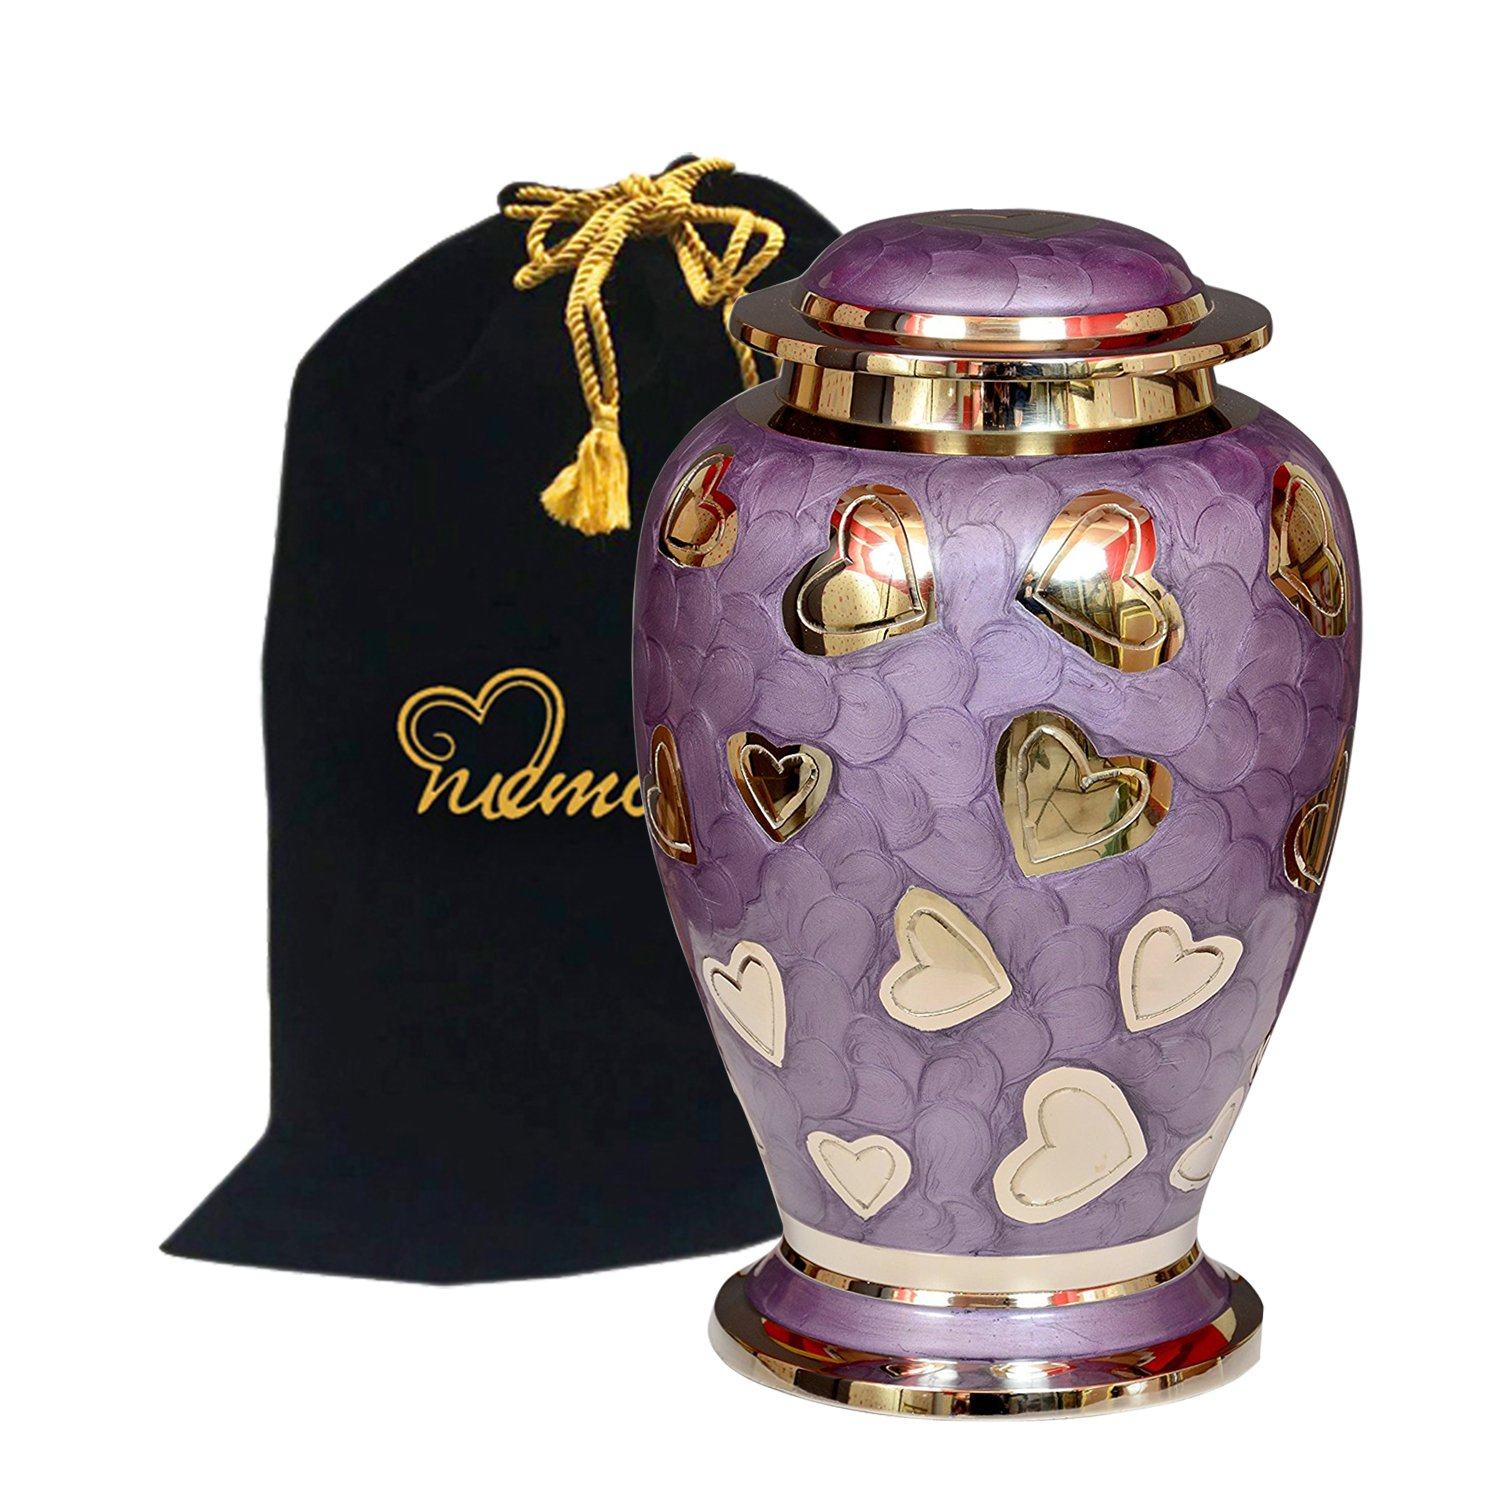 Lavender Hearts Cremation Urn - Purple & Silver Heart Urn - 100% Handcrafted Solid Brass Heart Urn for Human Ashes - Affordable Large Urn with Free Bag Memorials4u